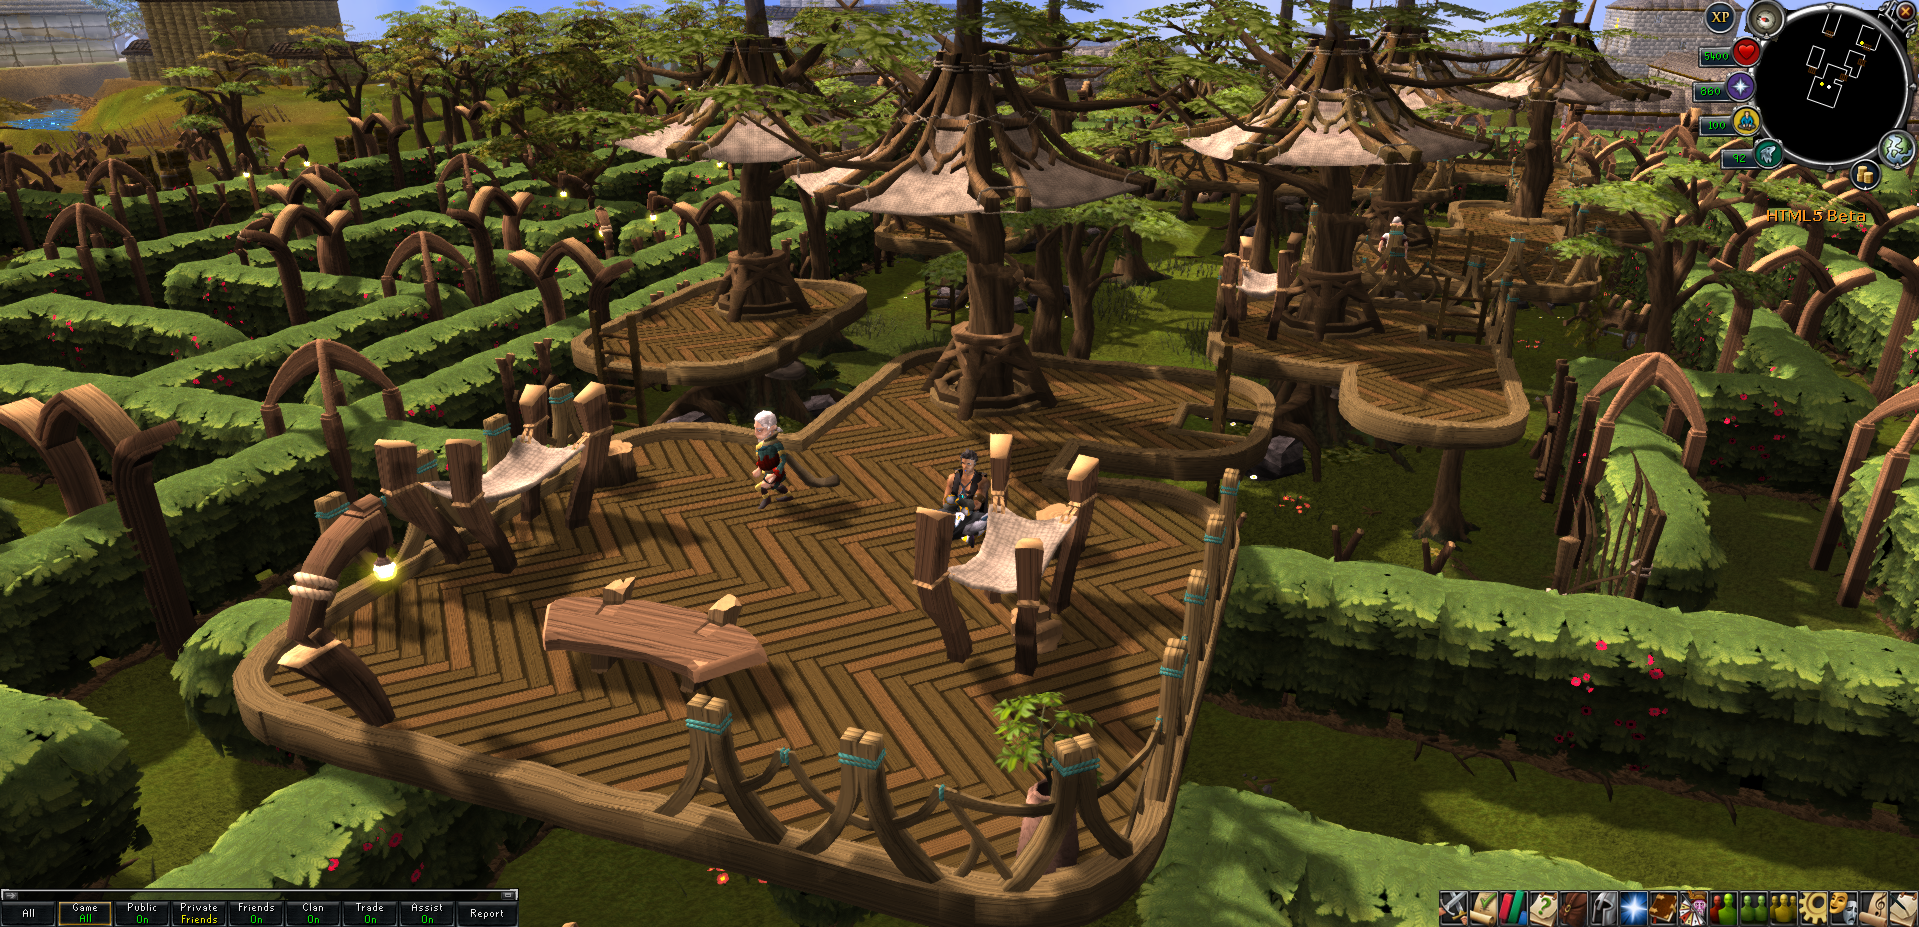 Runescape (HTML5) Tree Gnome Village by Jayzuryonime on